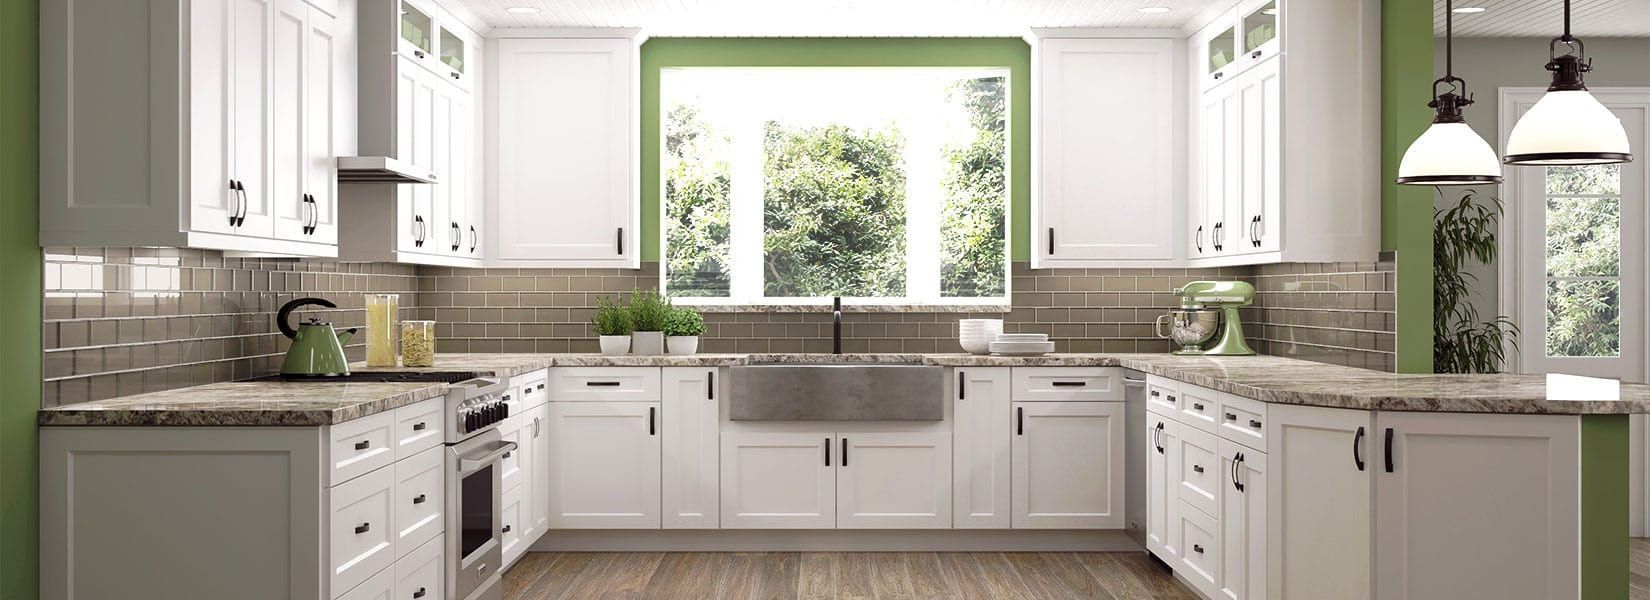 Financing Re Store Warehouse Offers New Kitchen Cabinet Financing